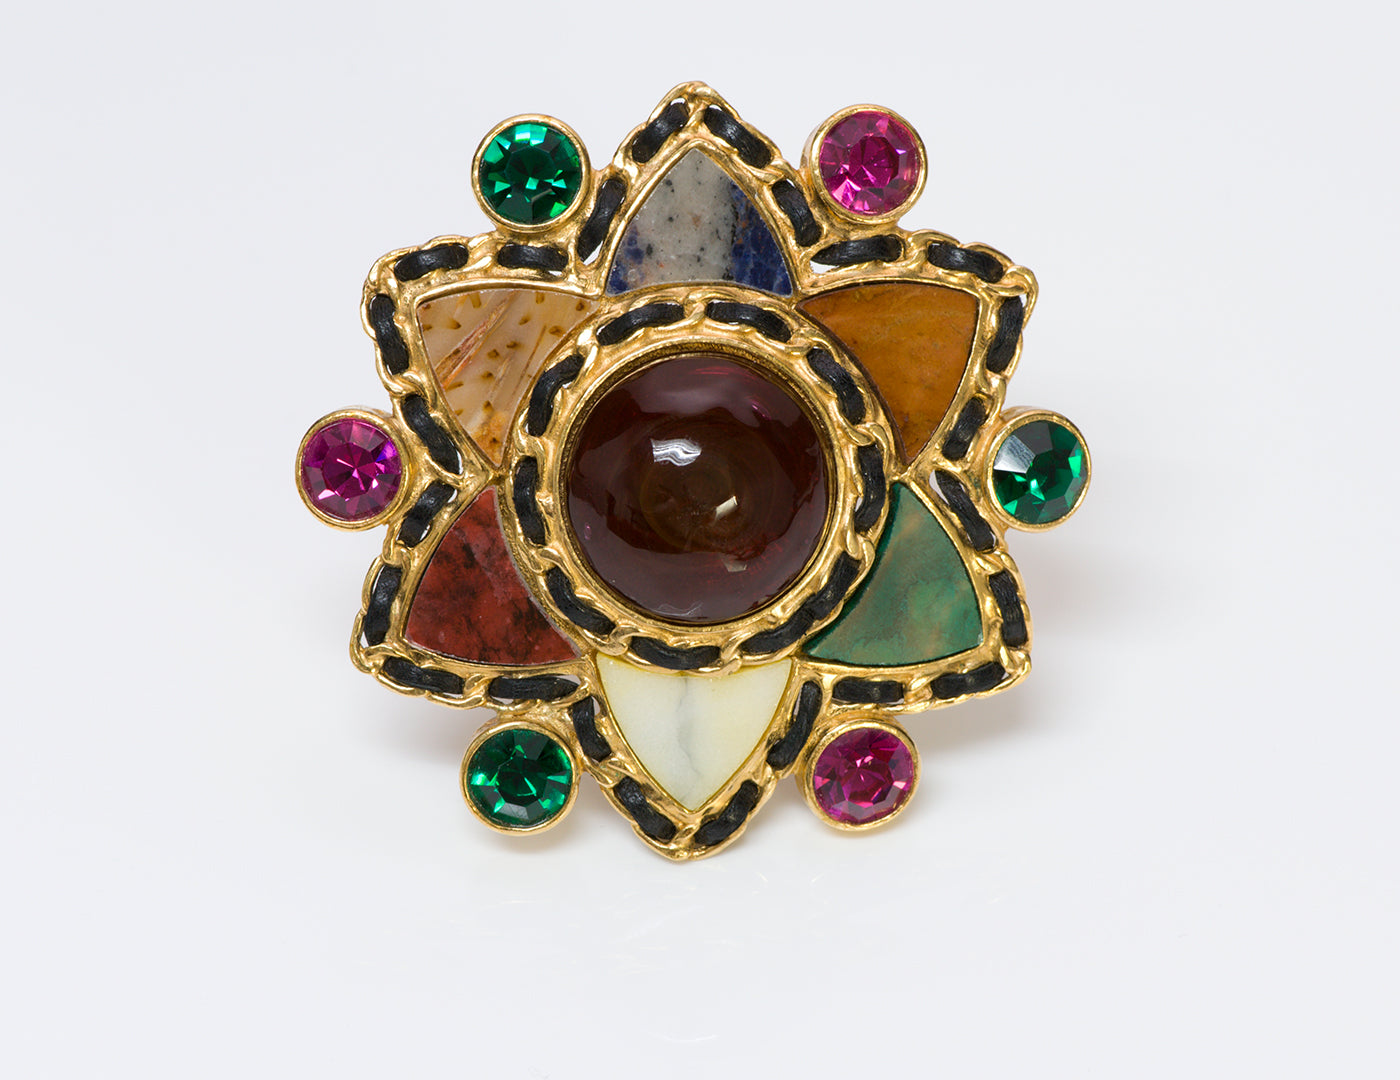 chanel-couture-gripoix-agate-star-brooch